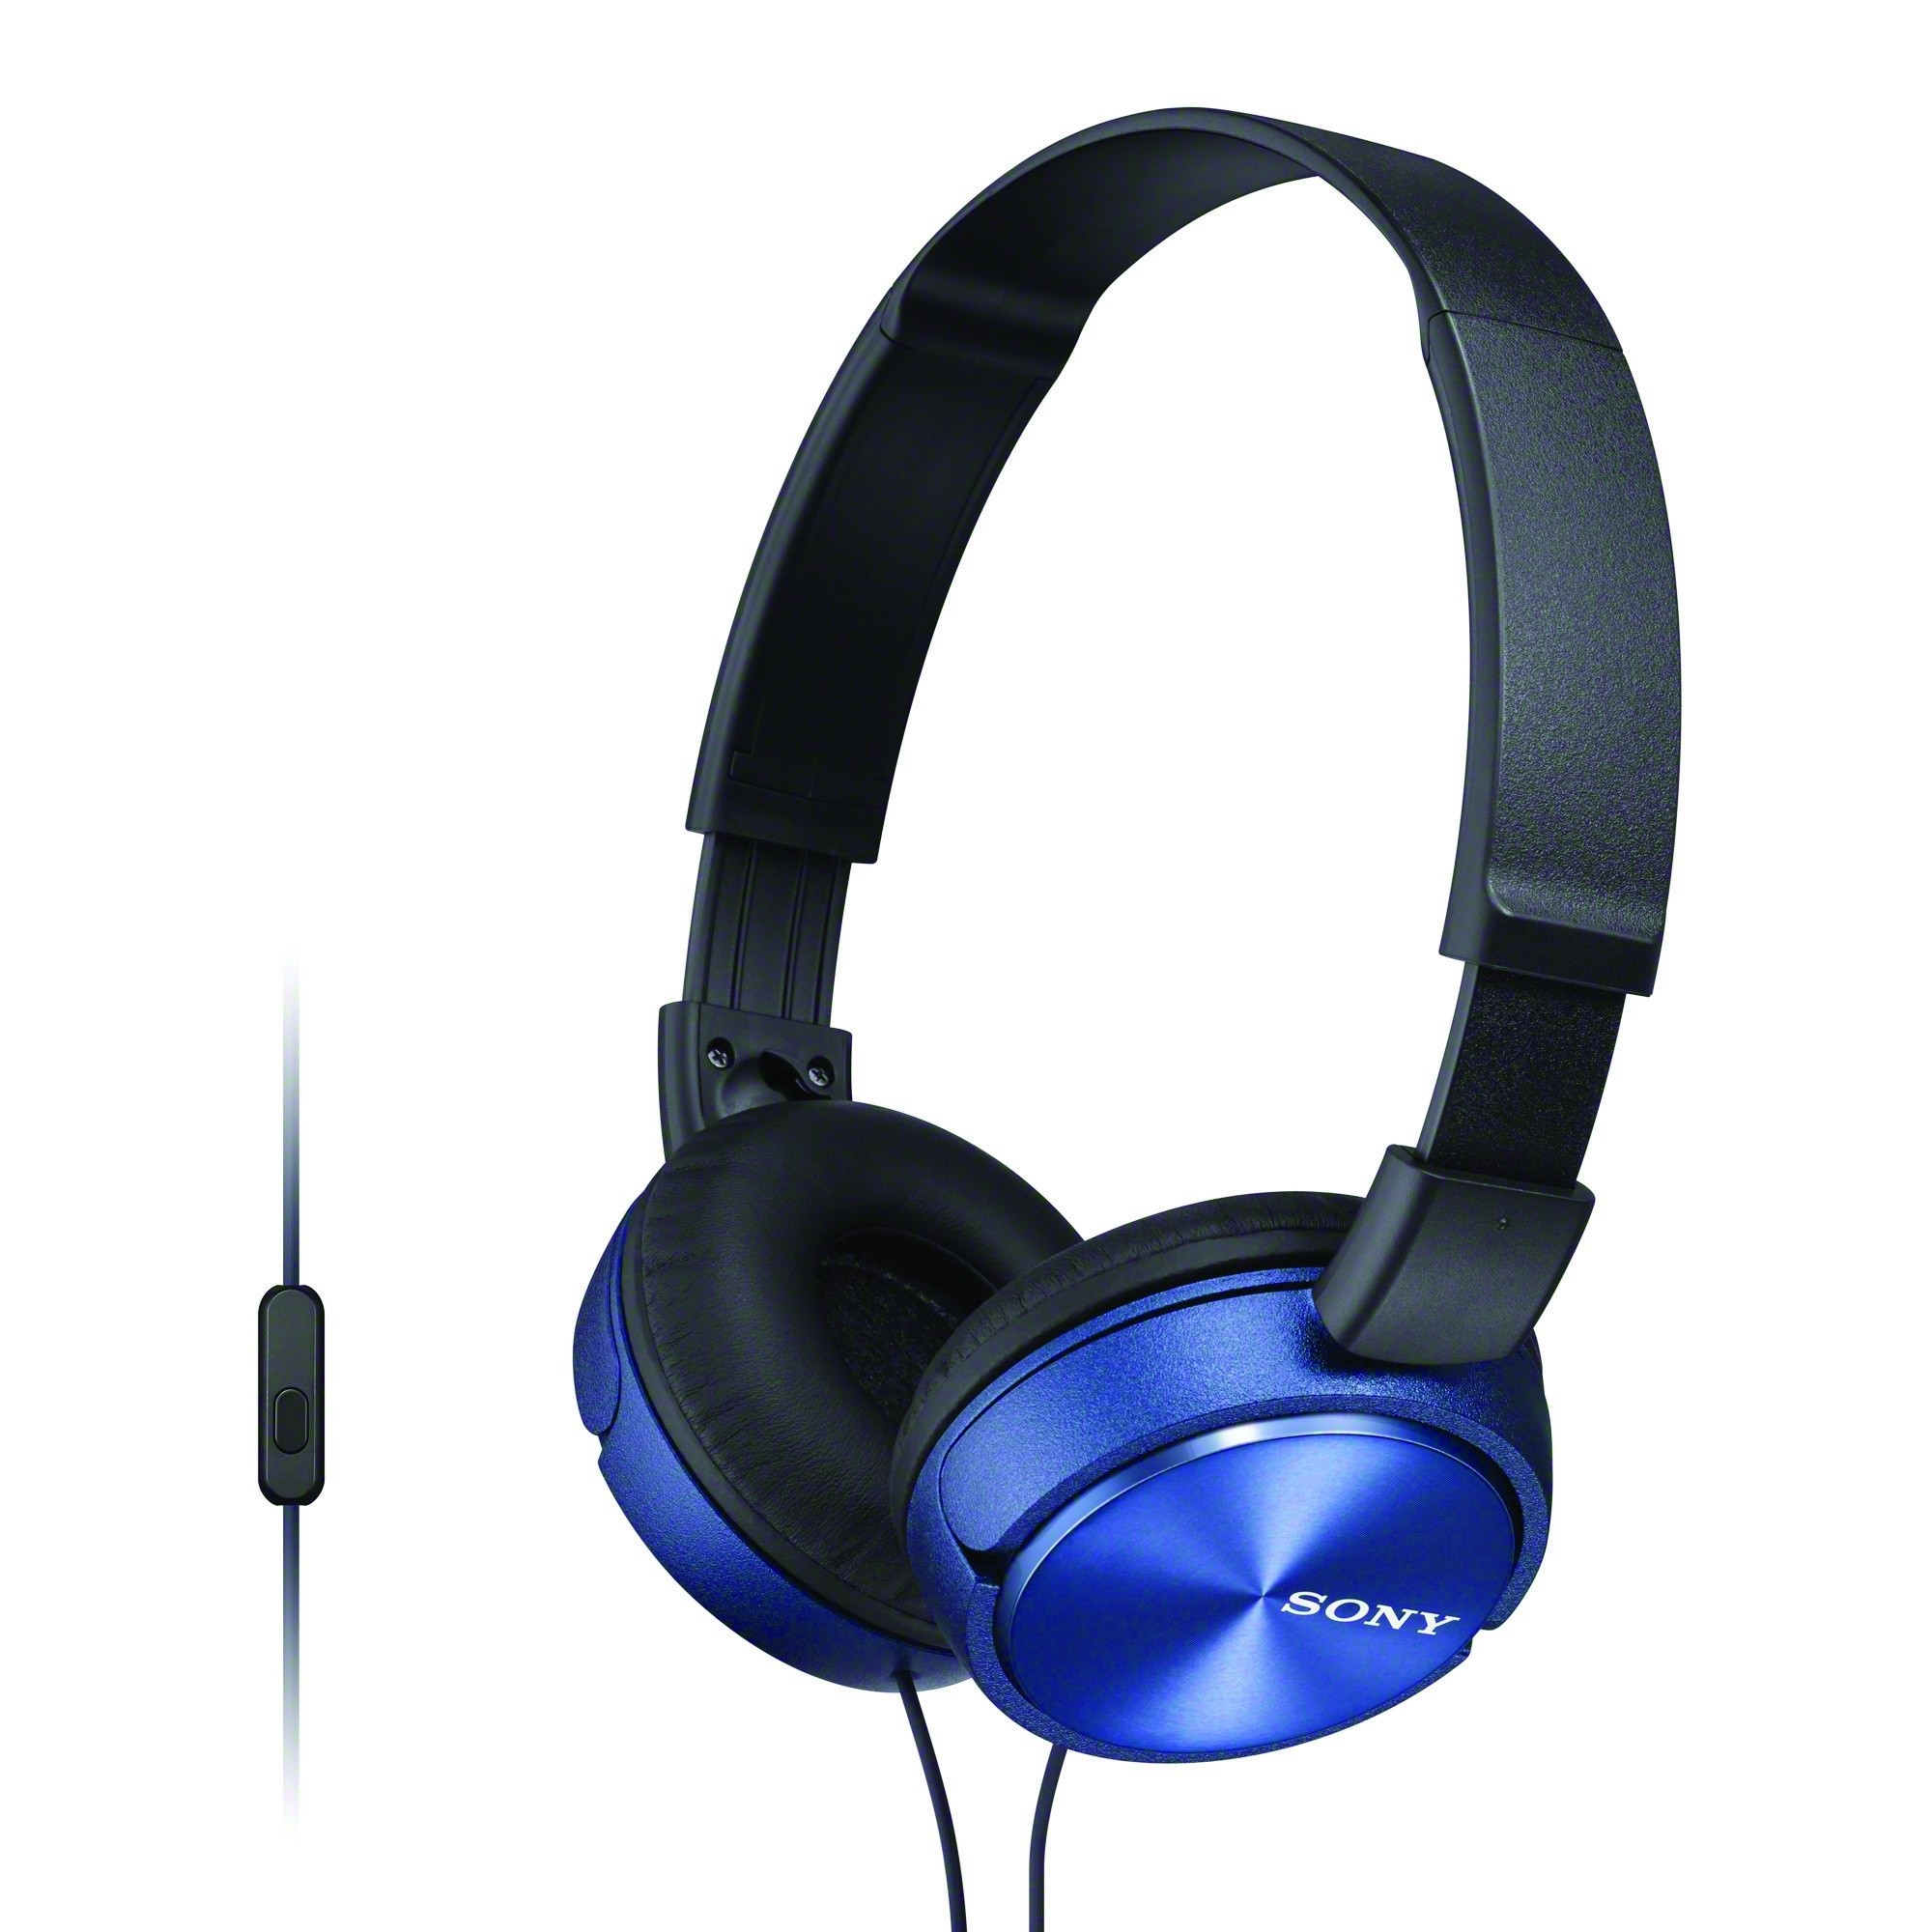 Headphones mic over - Sony MDR 1ABT - headphones with mic Overview